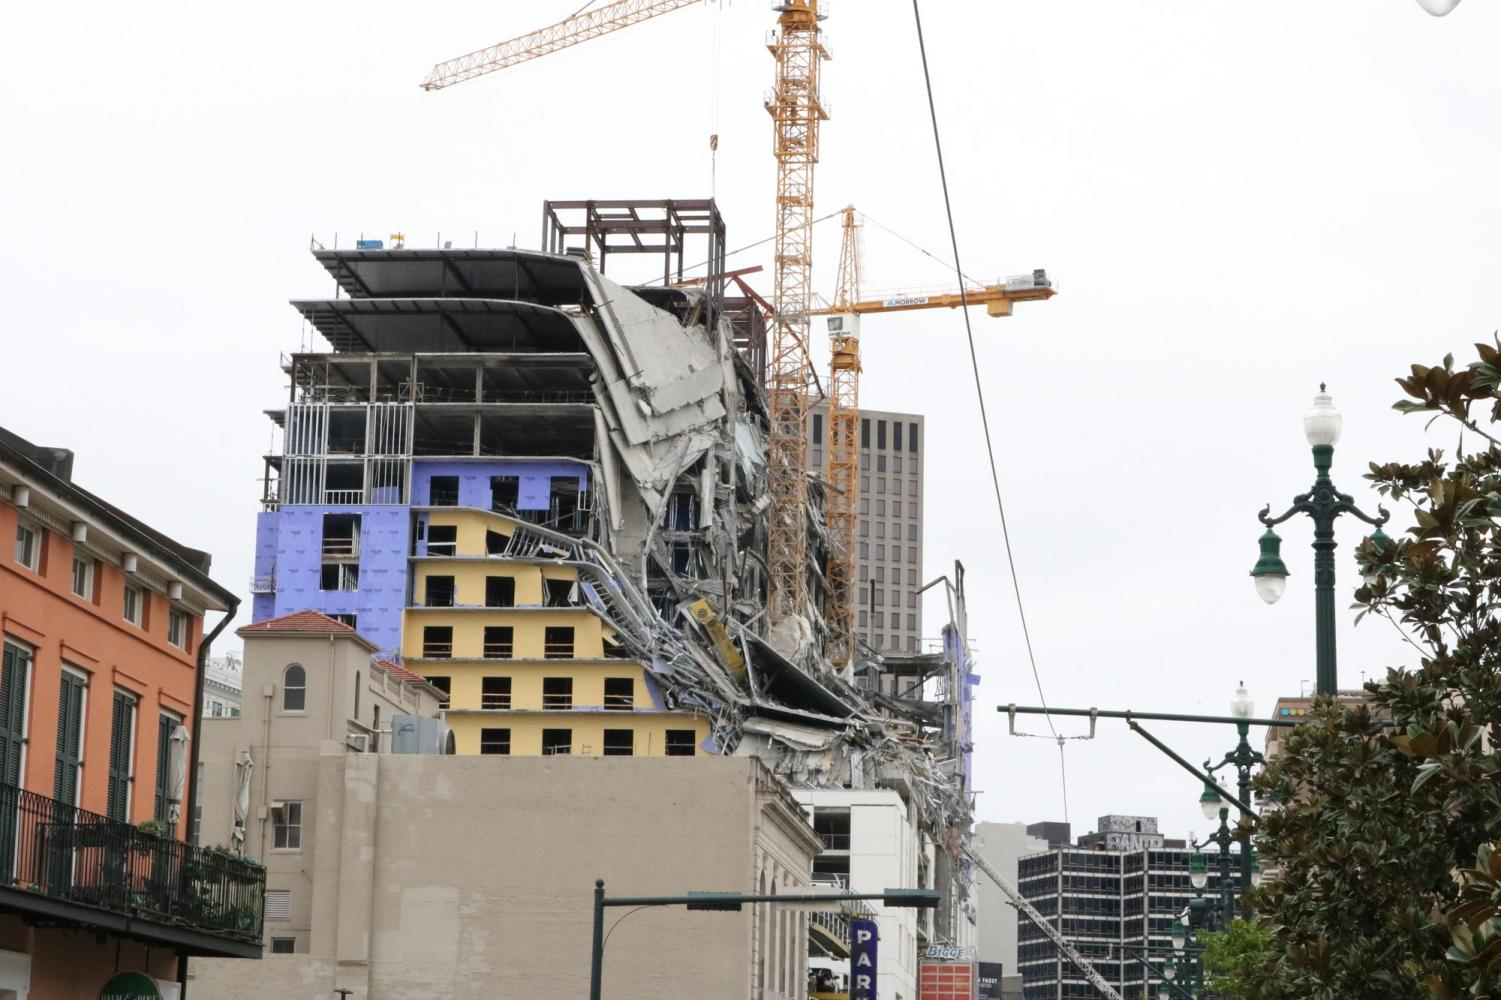 The Hard Rock Hotel collapsed early Saturday morning on October 12, 2019. Photo credit: Andres Fuentes